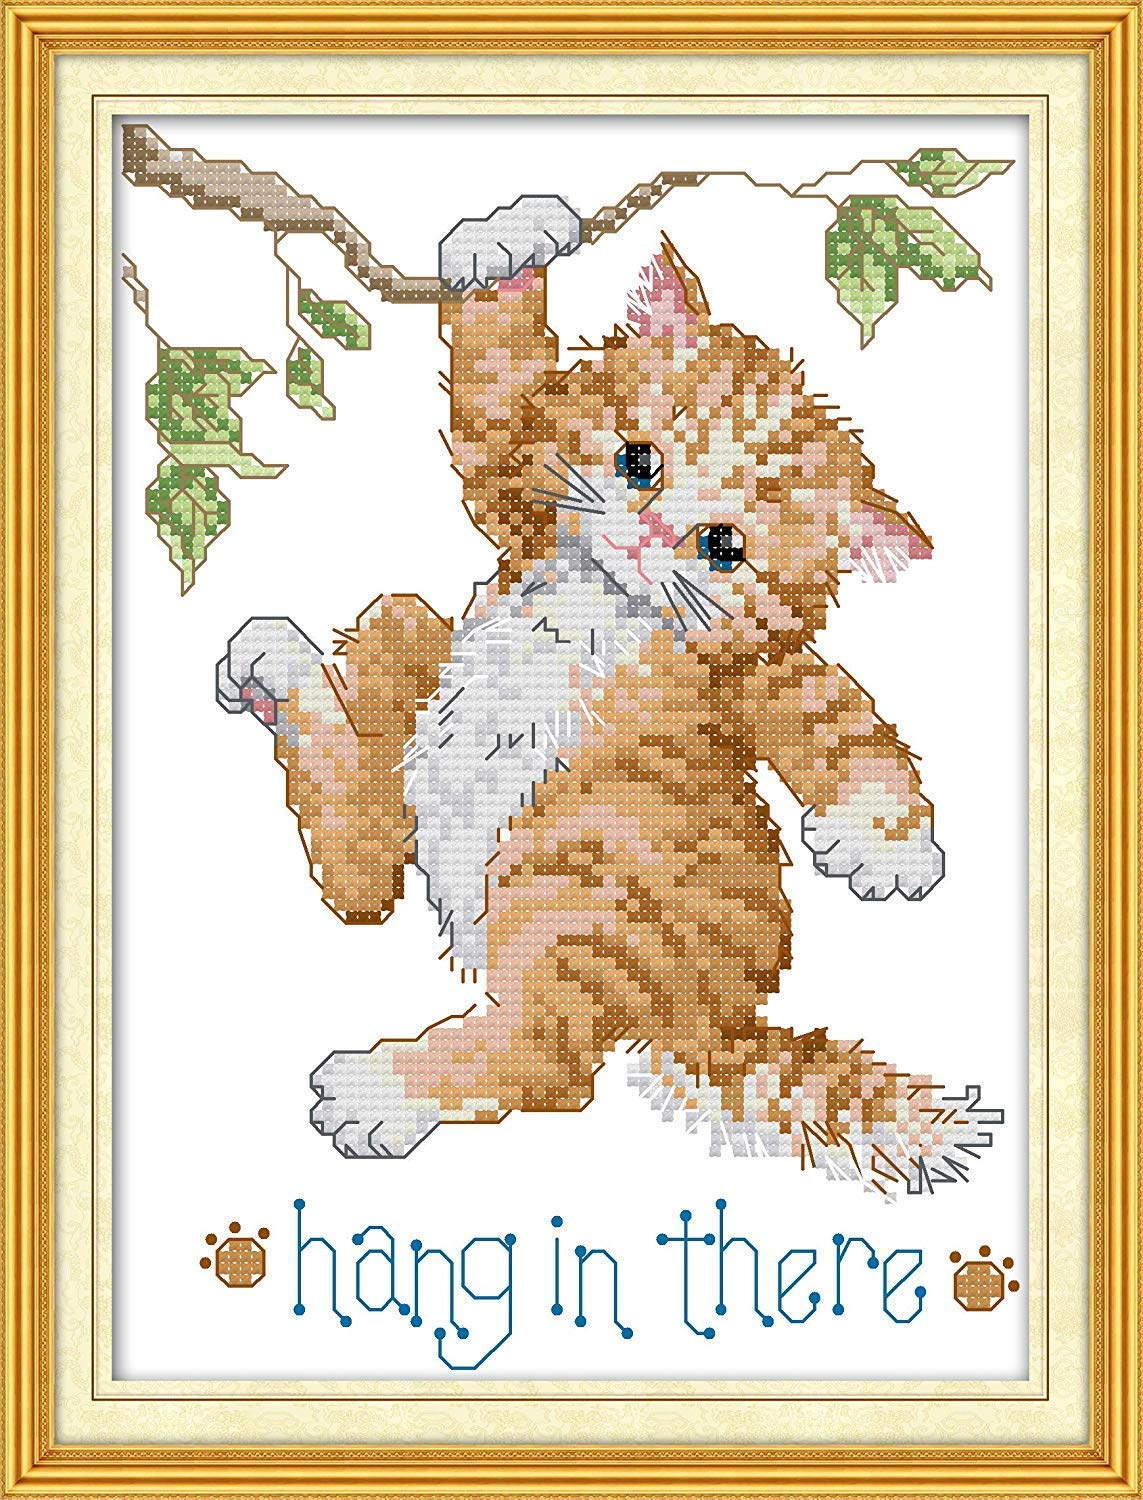 Cross Stitch Stamped Kits Quilt Pre-Printed Cross-Stitching Patterns for Beginner Kids Adults Embroidery Crafts Needlepoint Starter Kits for Home Wall Decor Maple Leaf Pattern